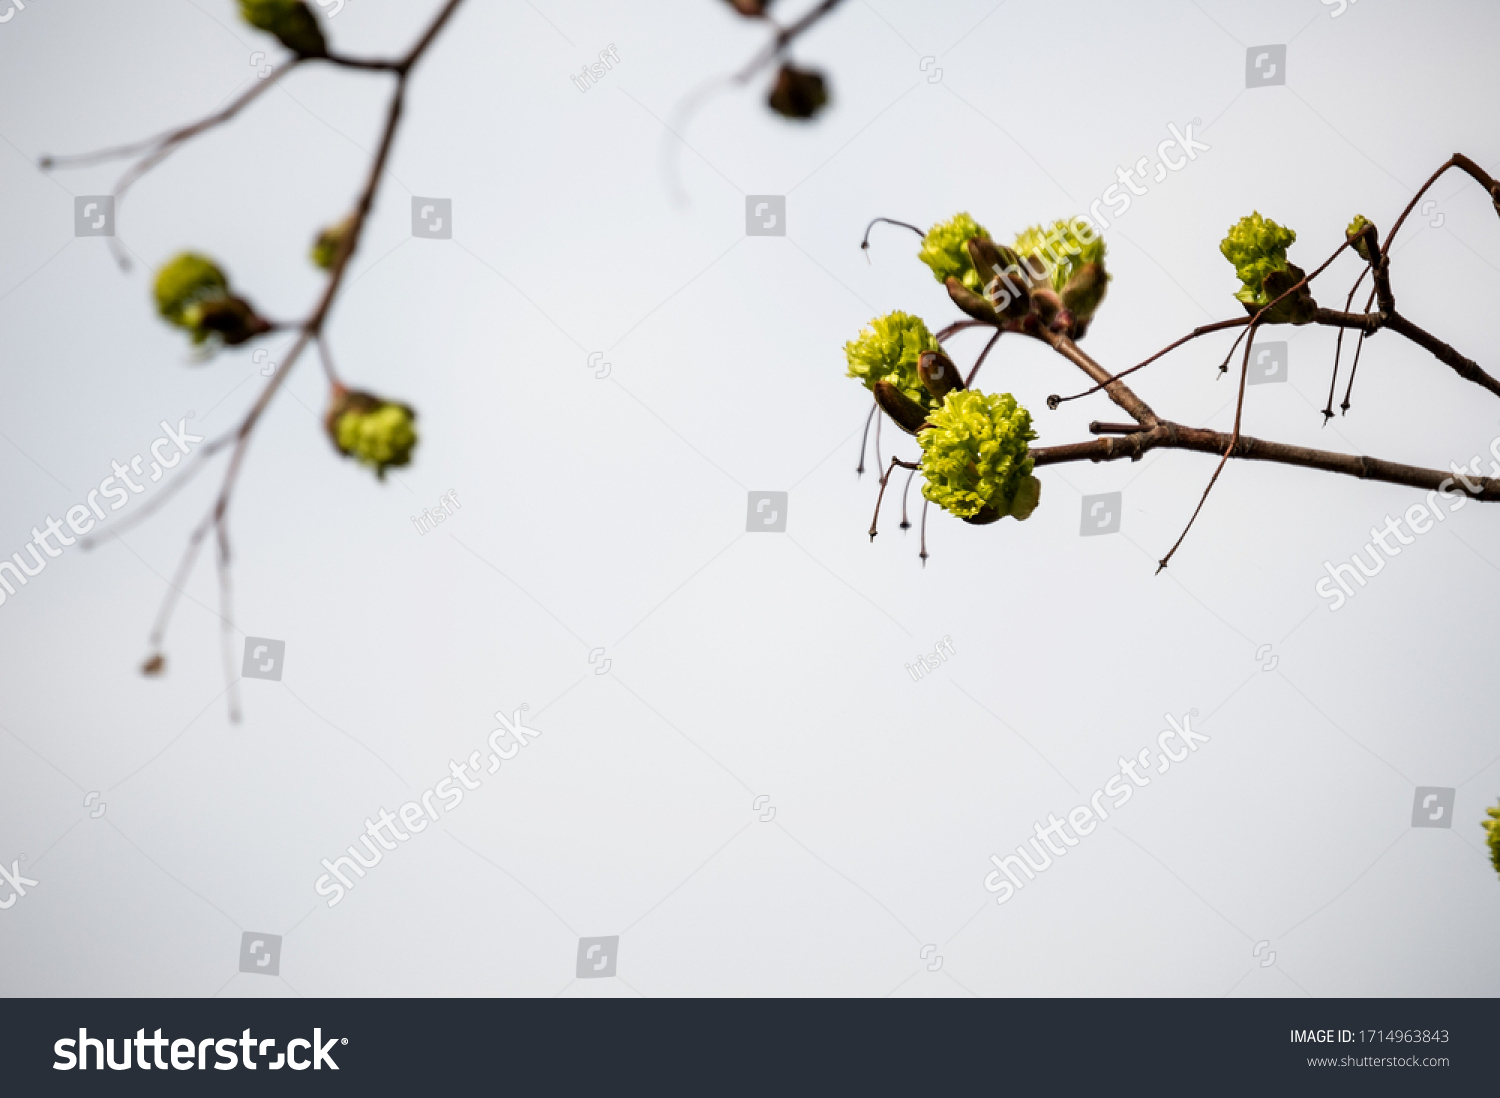 stock-photo-fresh-maple-buds-on-branches